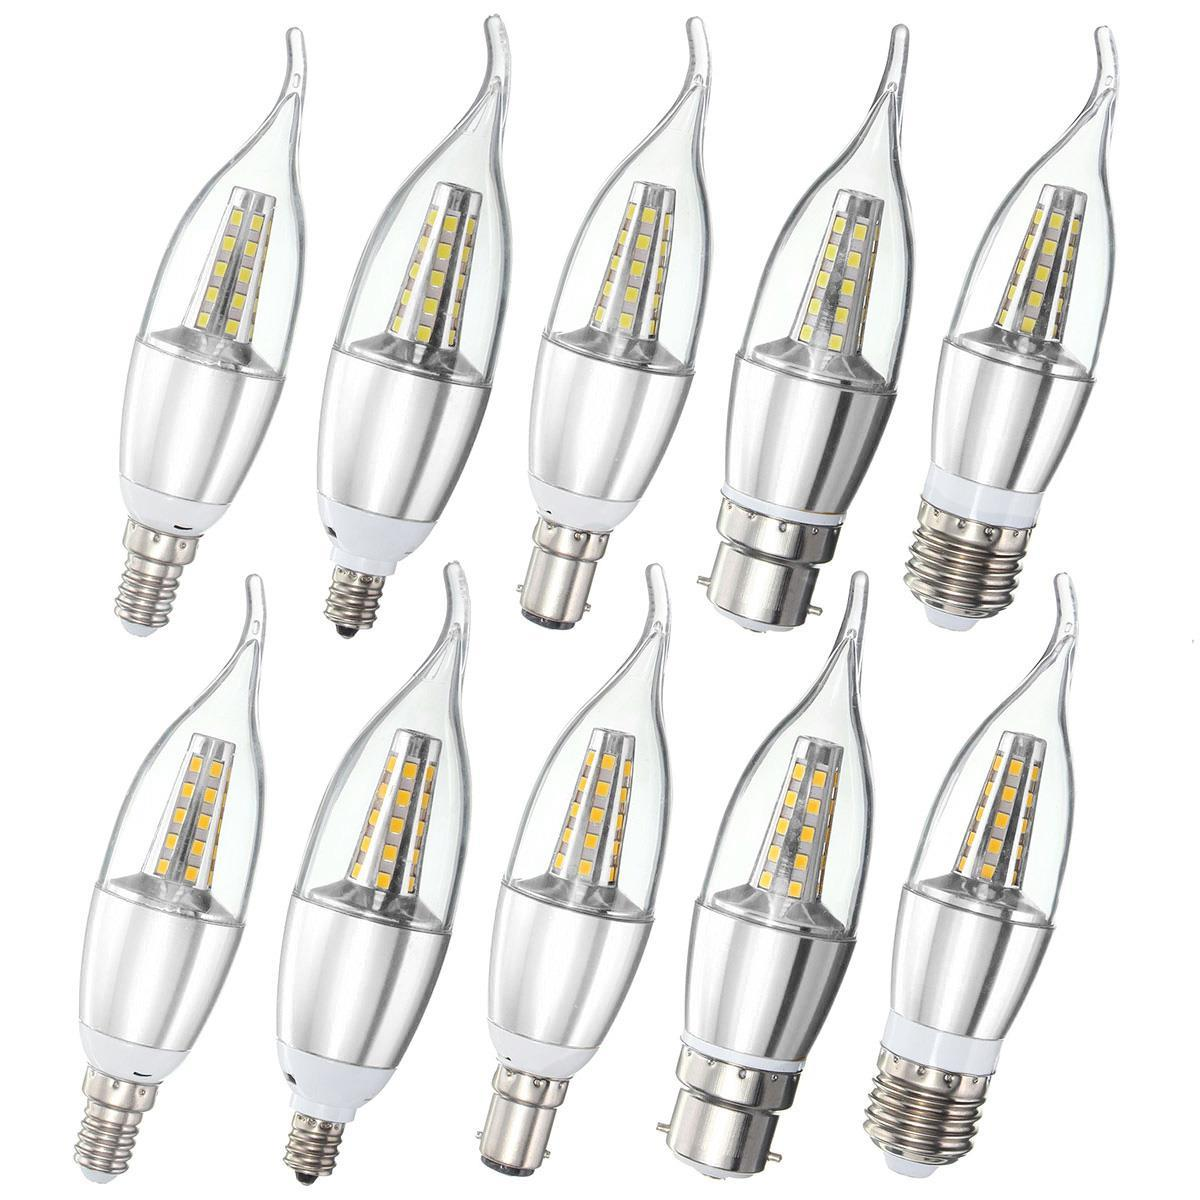 E27 E14 E12 B22 B15 6w 35 Smd Led Warm White White Candle Light Lamp Bulb Ac85 265v Sale